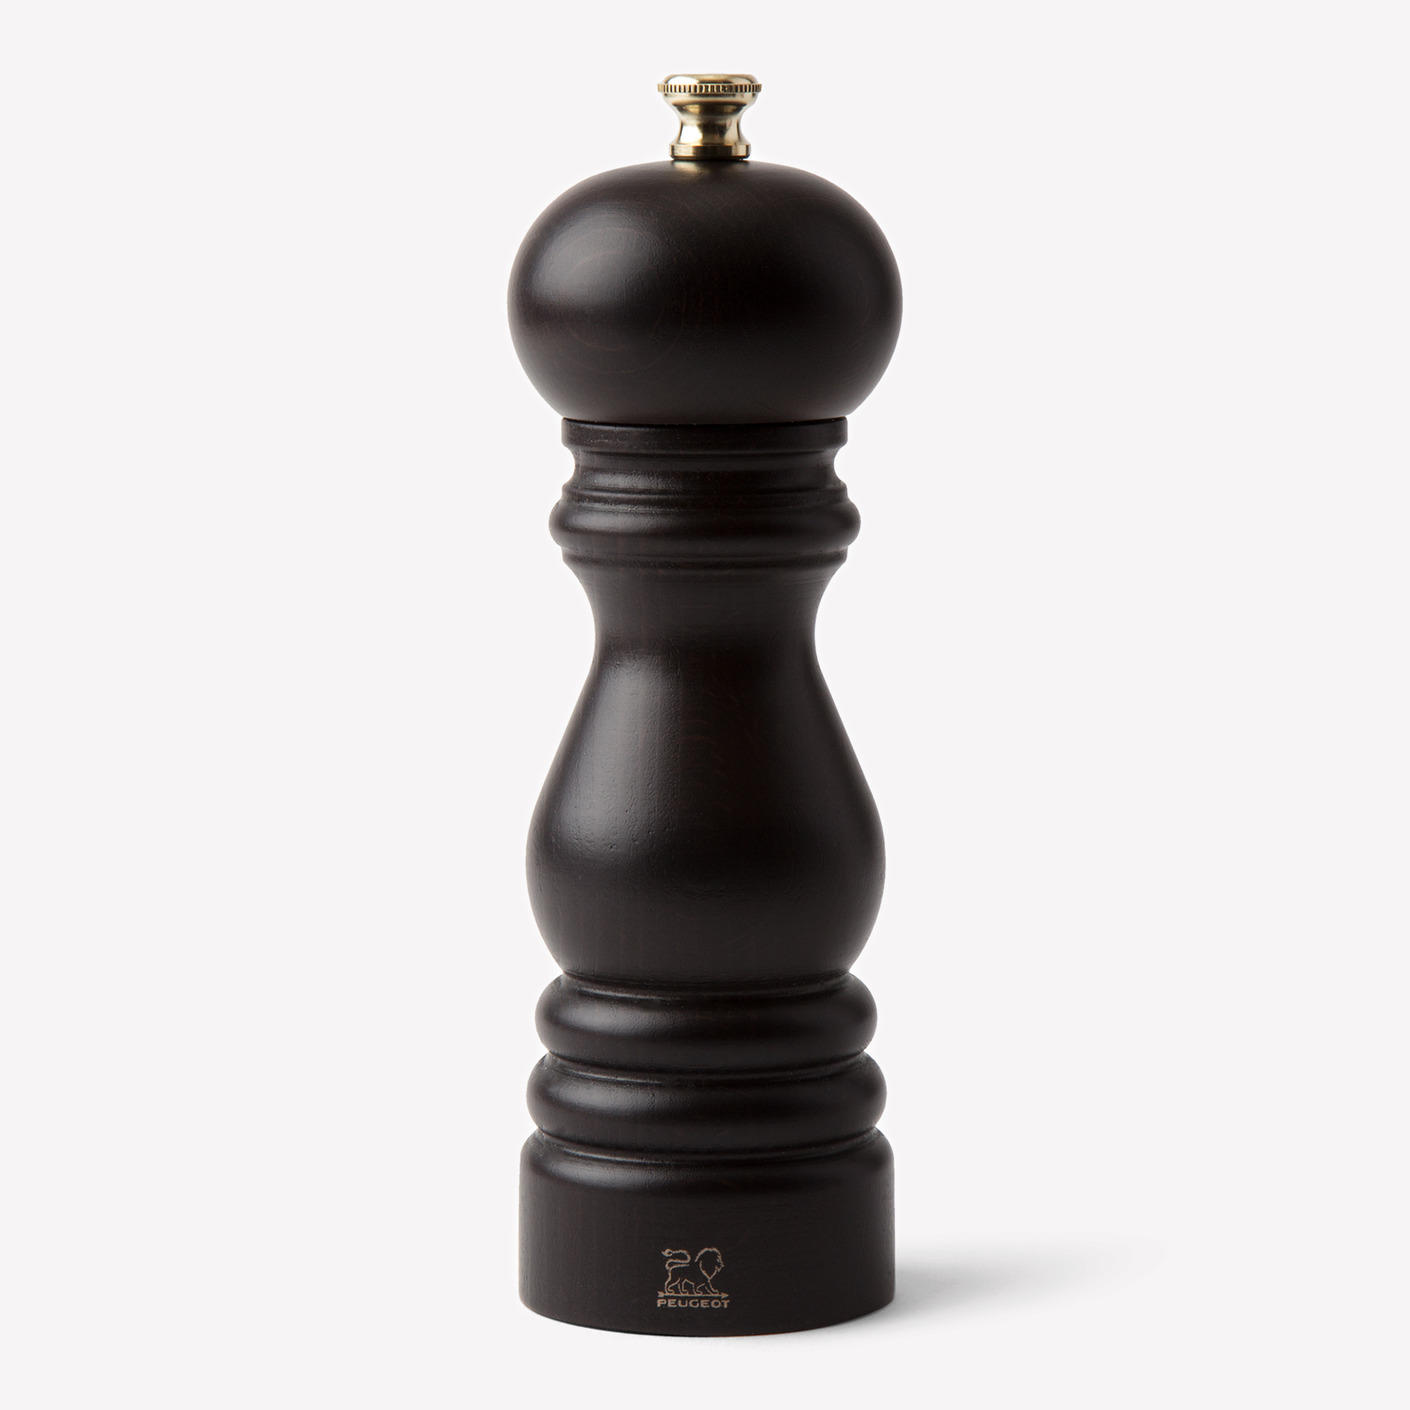 Peugeot 23485 Paris u'Select 9-inch Pepper Mill